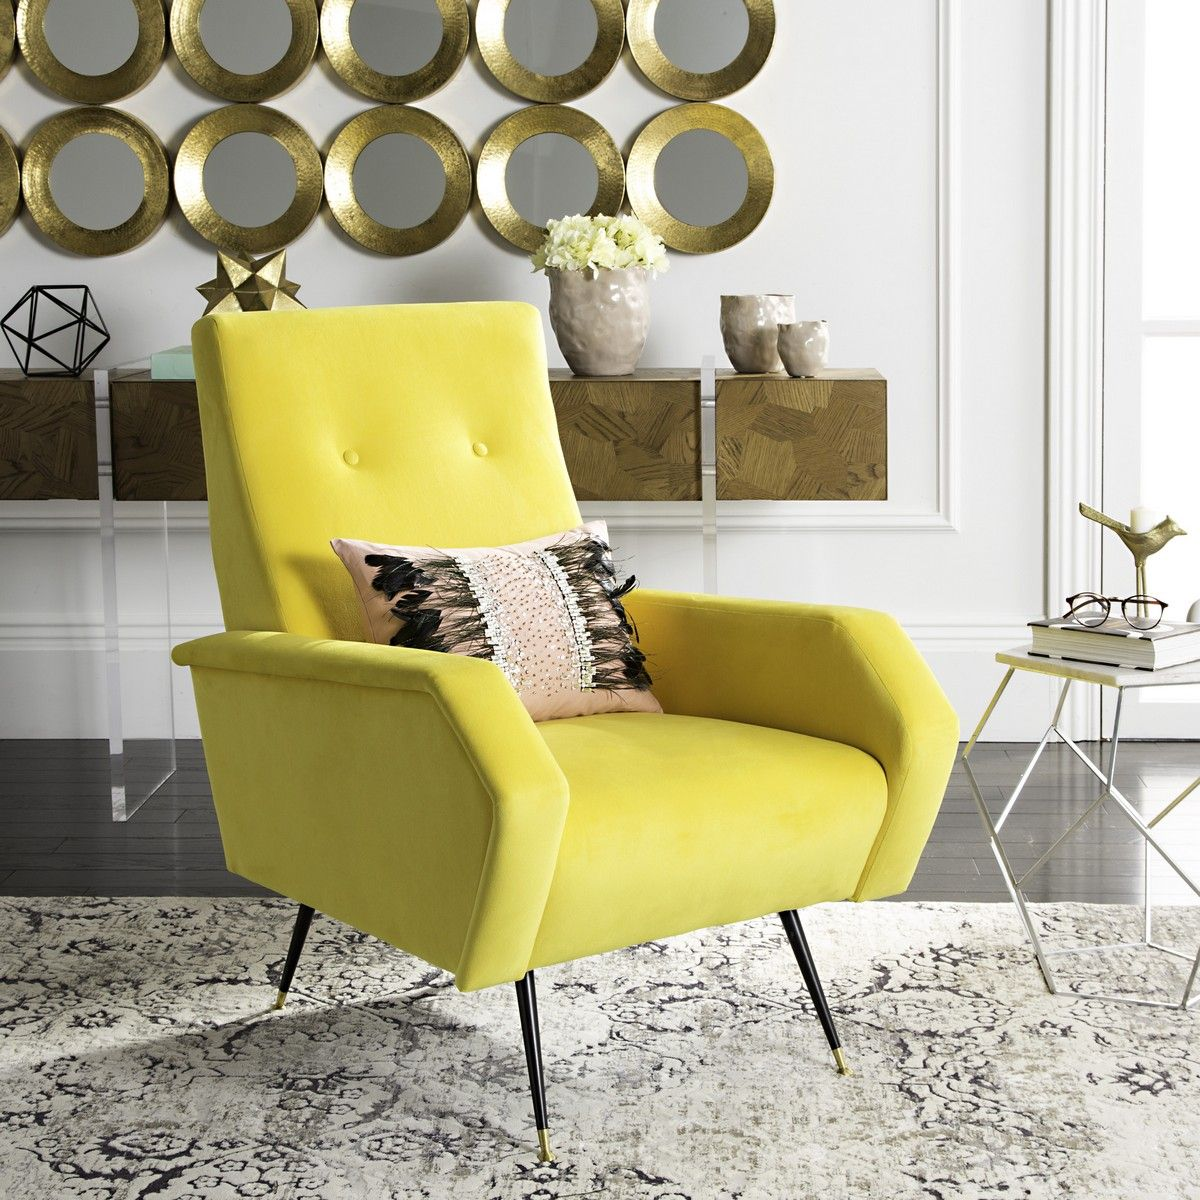 FOX6258A Accent Chairs Furniture by FOX6258A